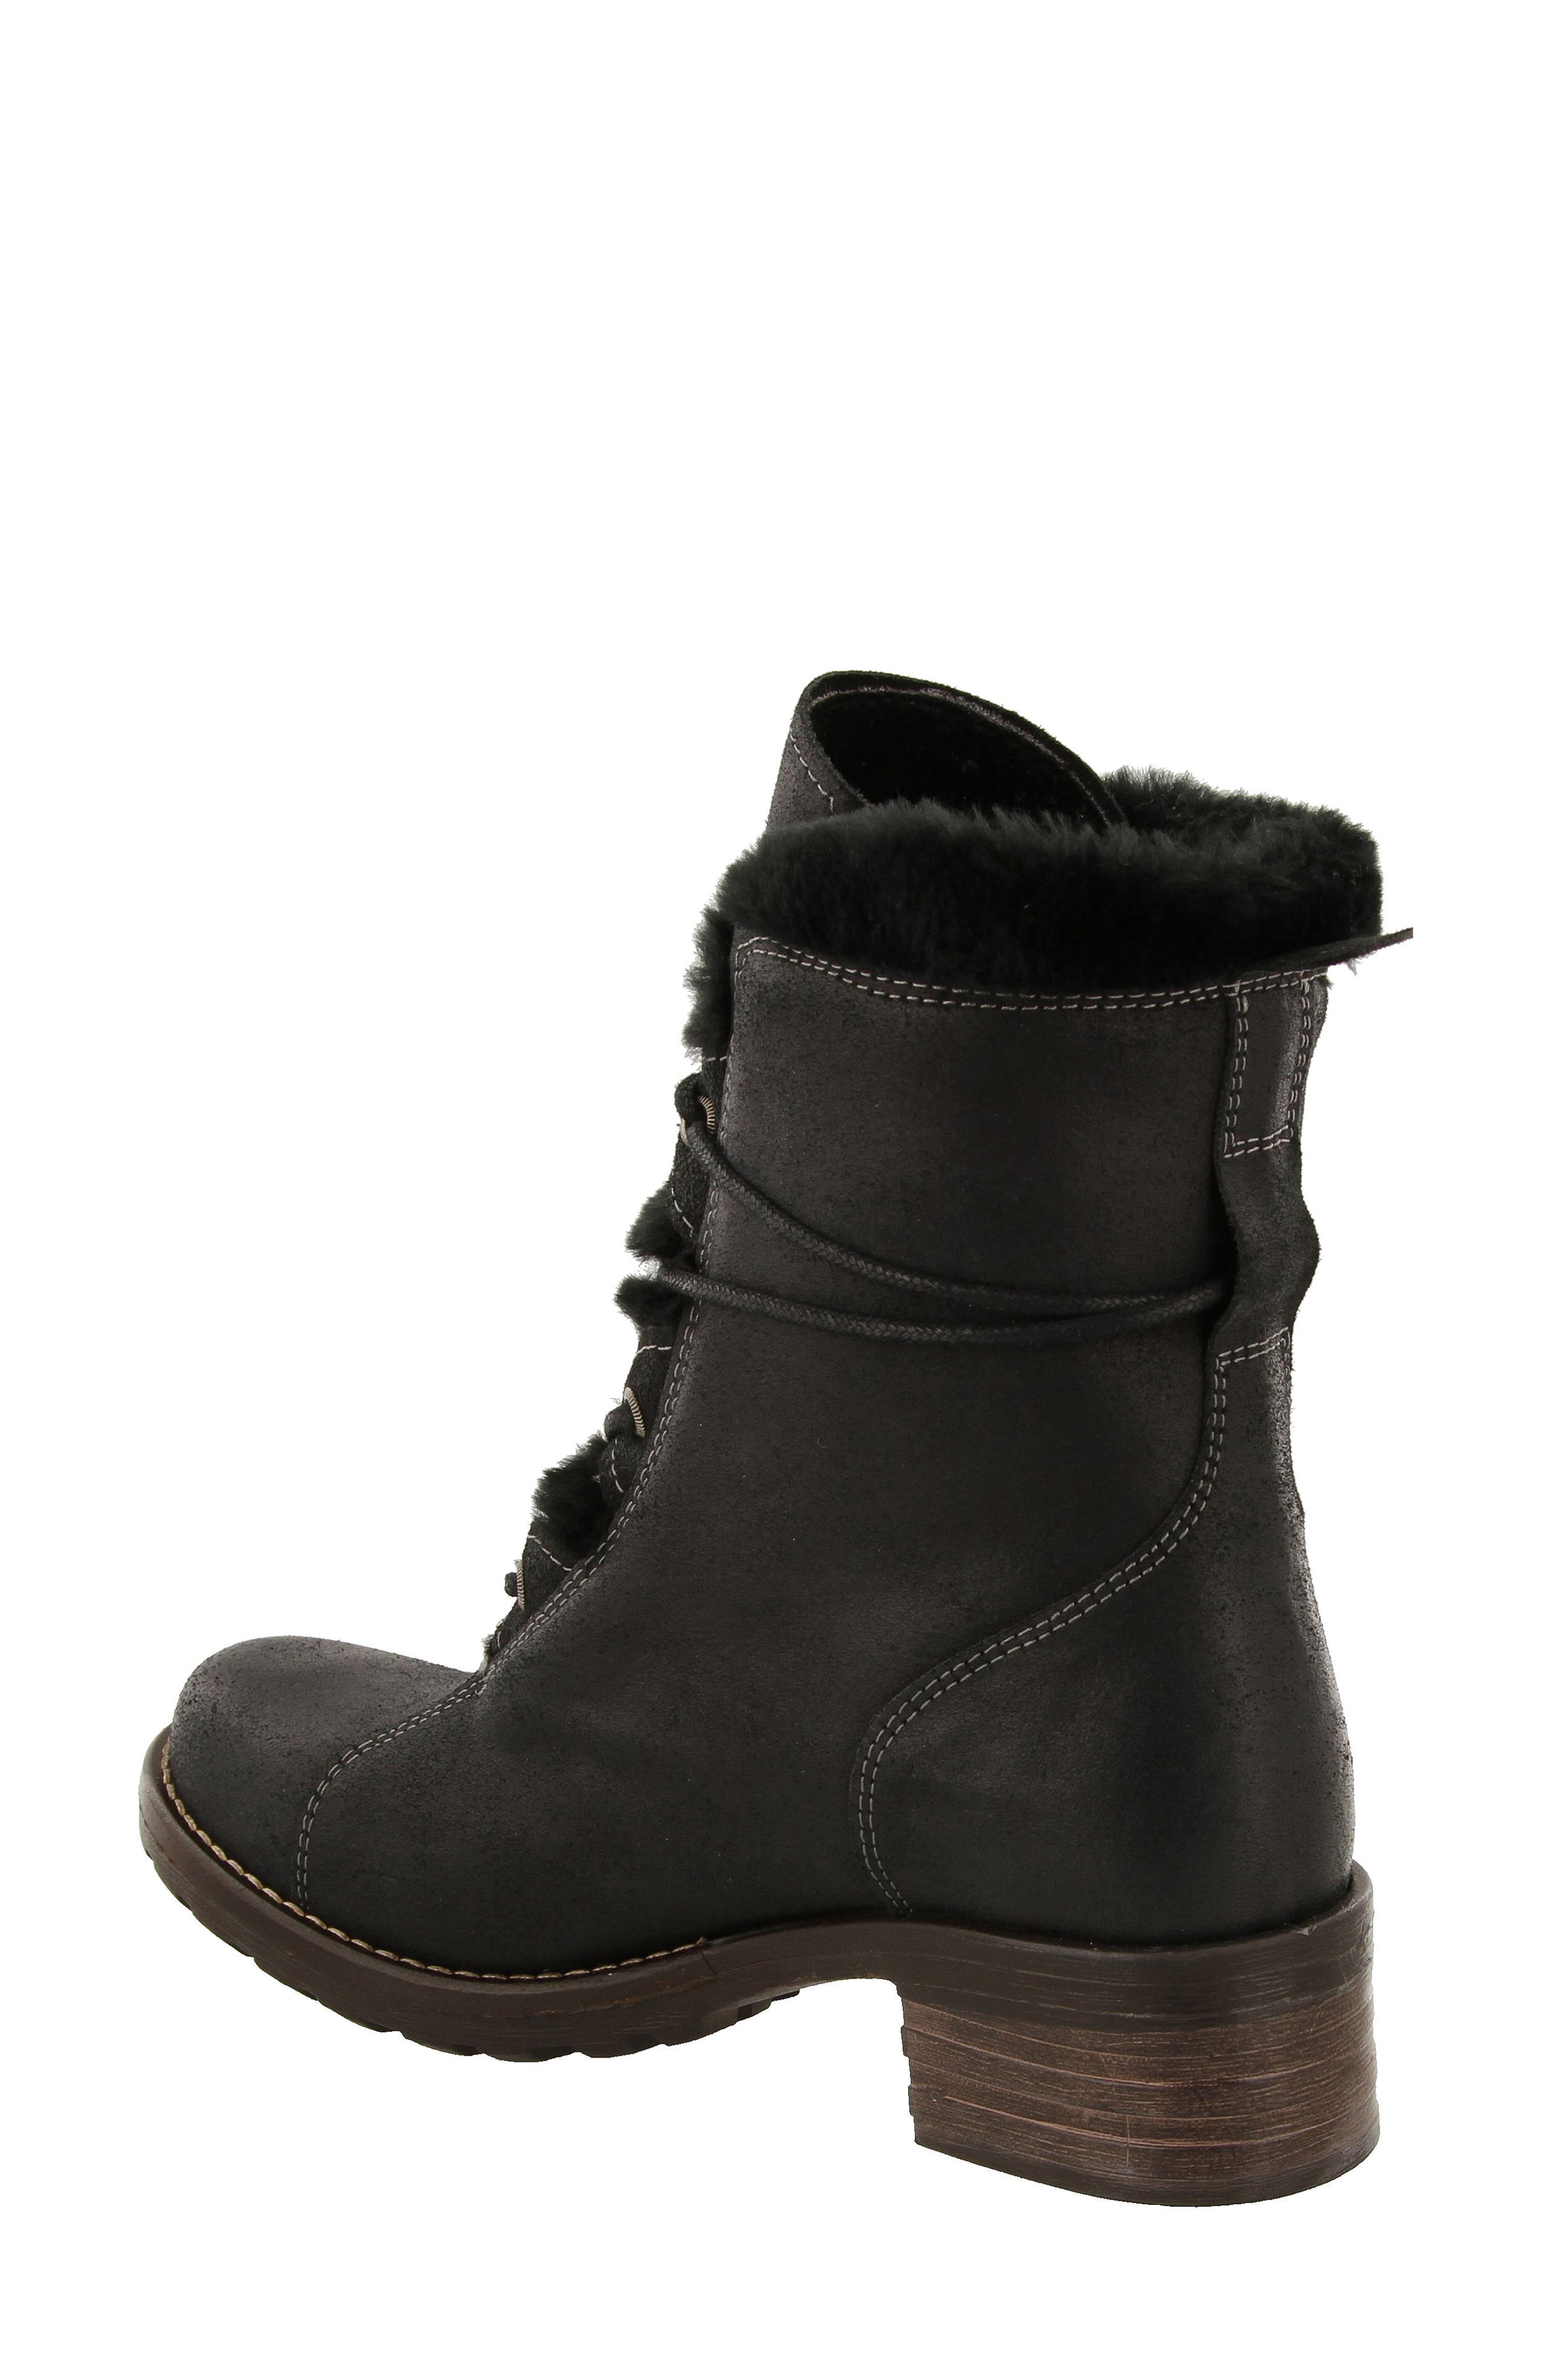 Alternate Image 2  - Taos Furkle Boot with Faux Fur Trim (Women)